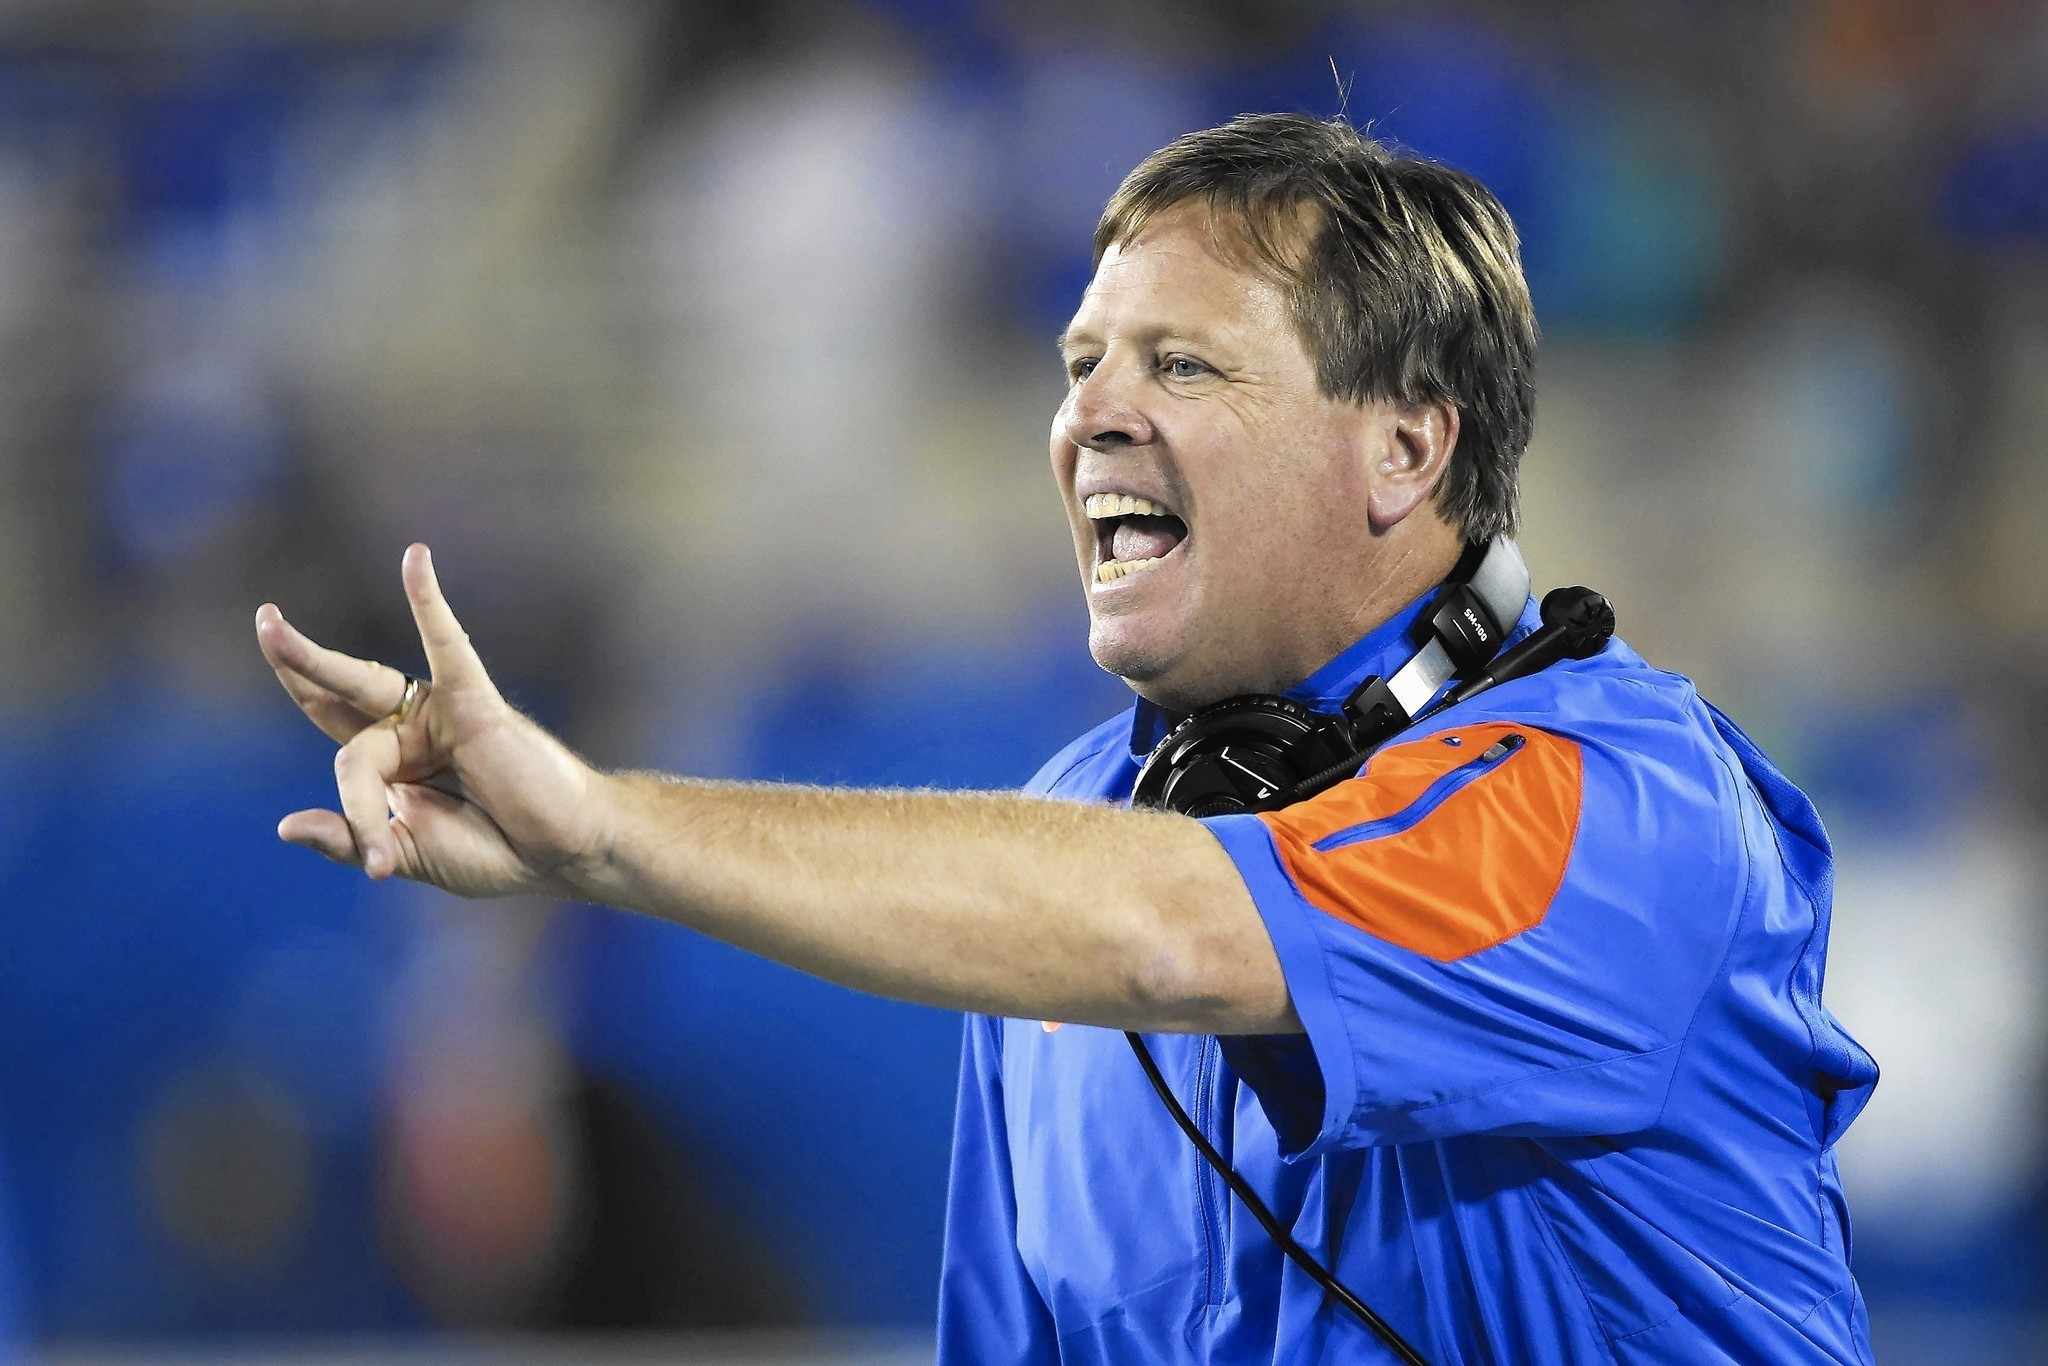 Os-mcelwain-gators-will-participate-in-satellite-camps-20160504